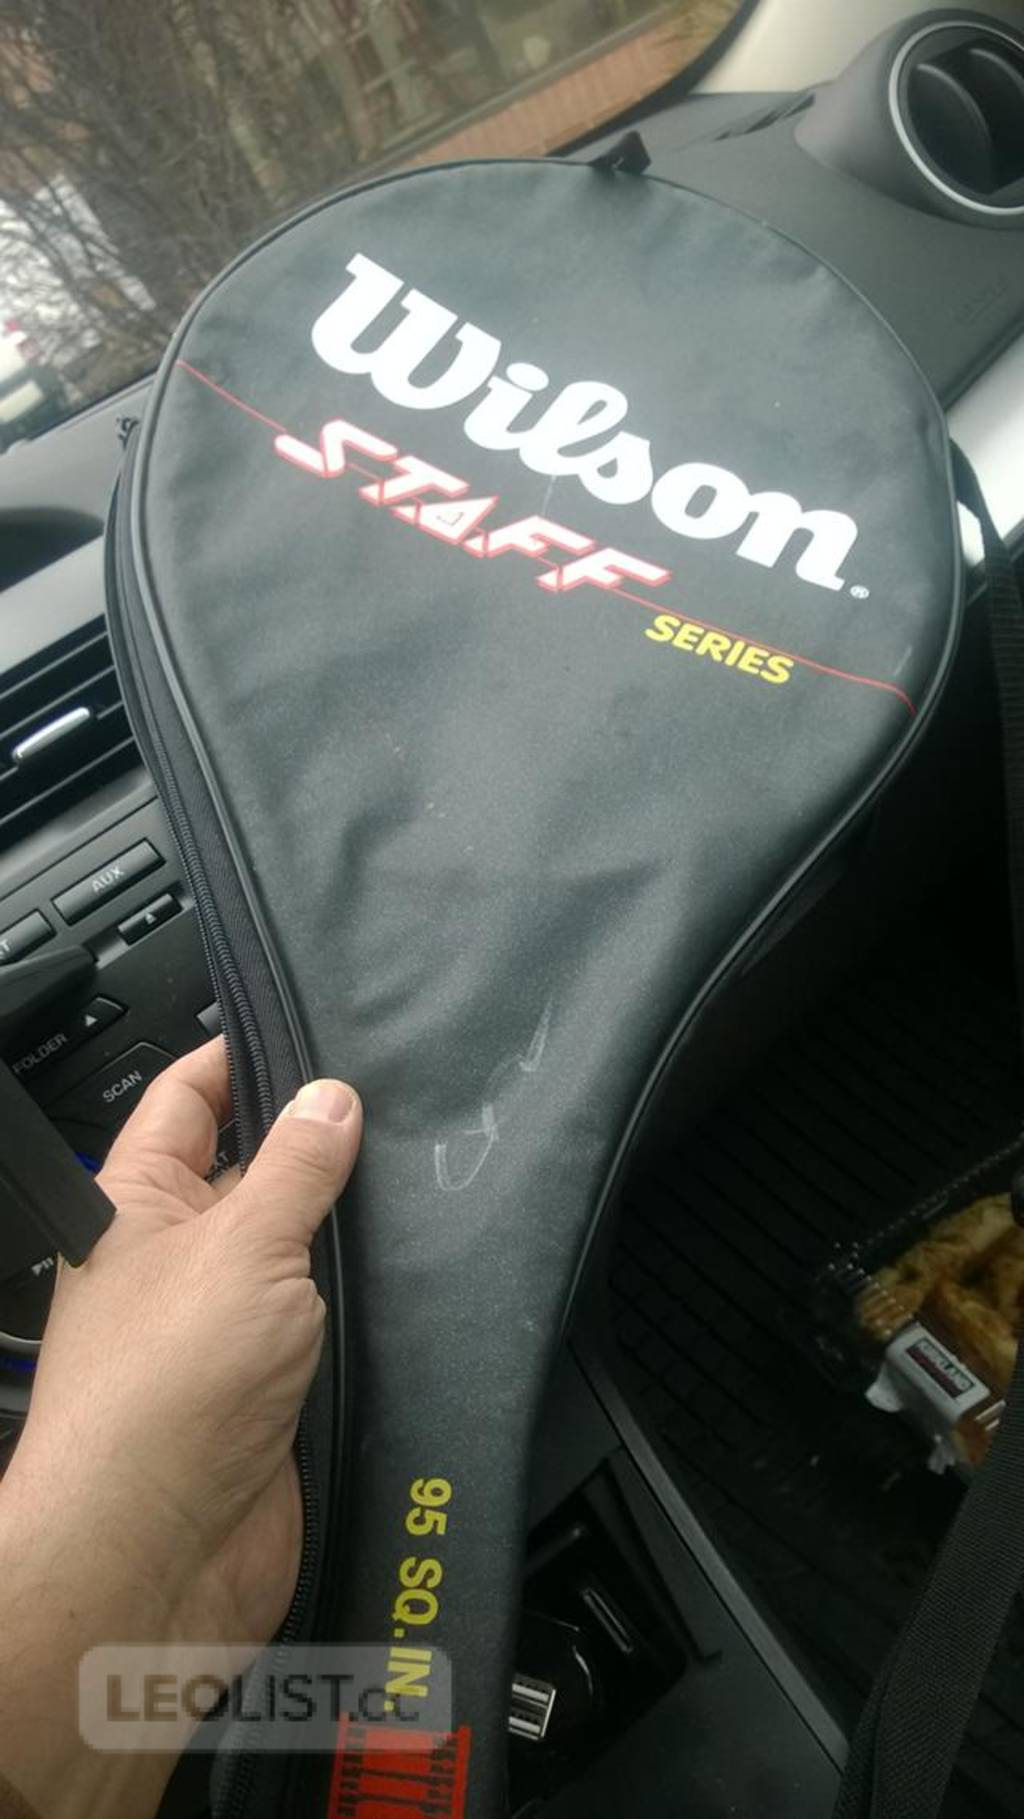 $35, Wilson Pro Staff 7.0 Tennis Racket Chris Evert  used but in great shape comes with cover